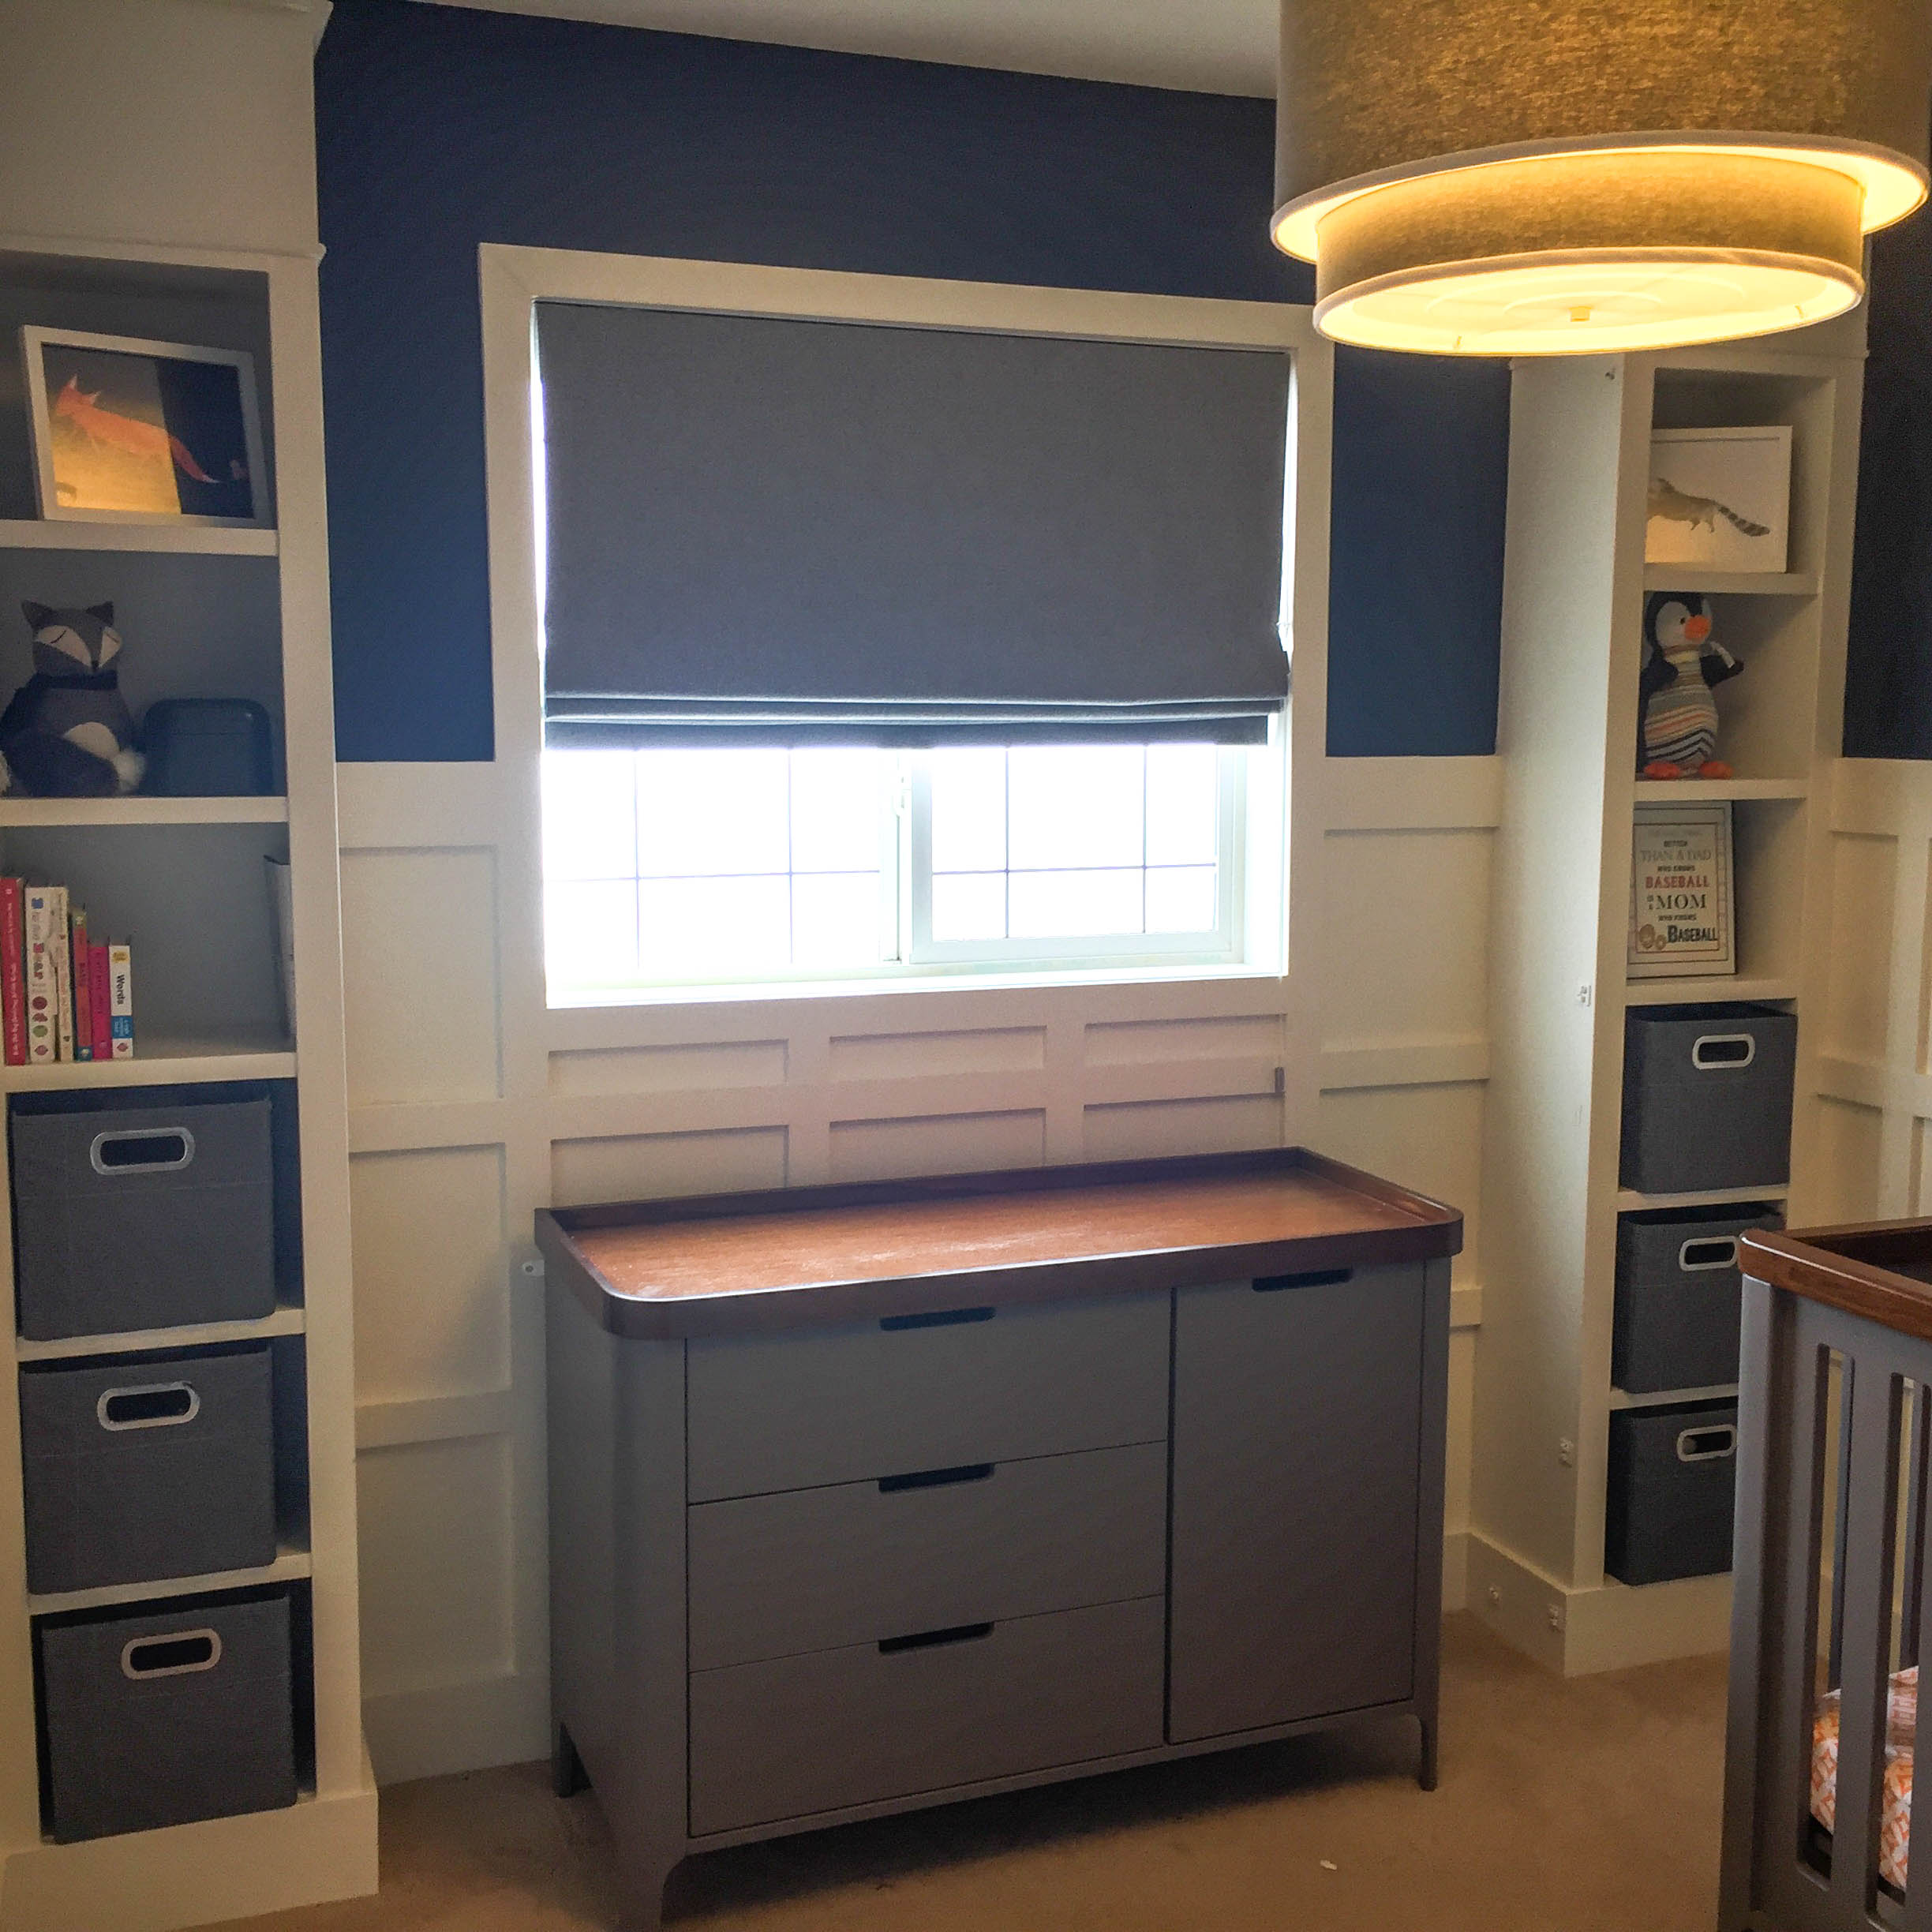 Our son's nursery, we did board and batten on the walls, and ikea built ins to add character.